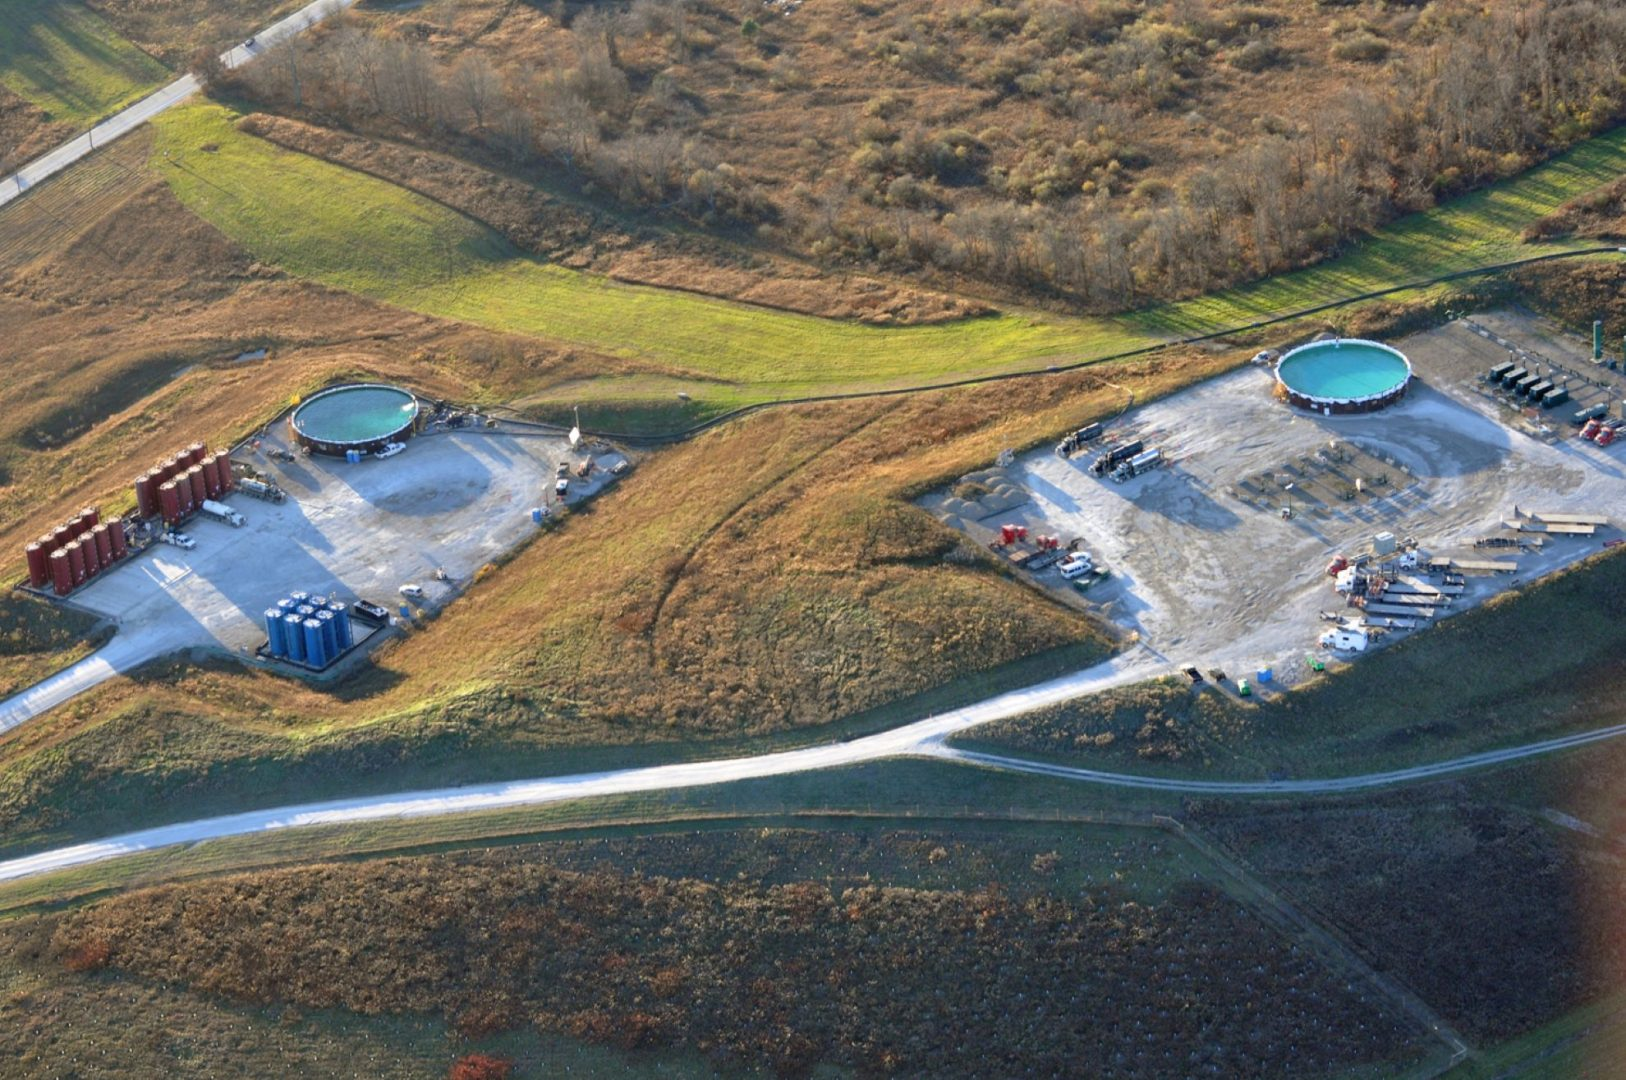 npr.org - Group says tighter radiation controls of drilling waste needed   StateImpact Pennsylvania